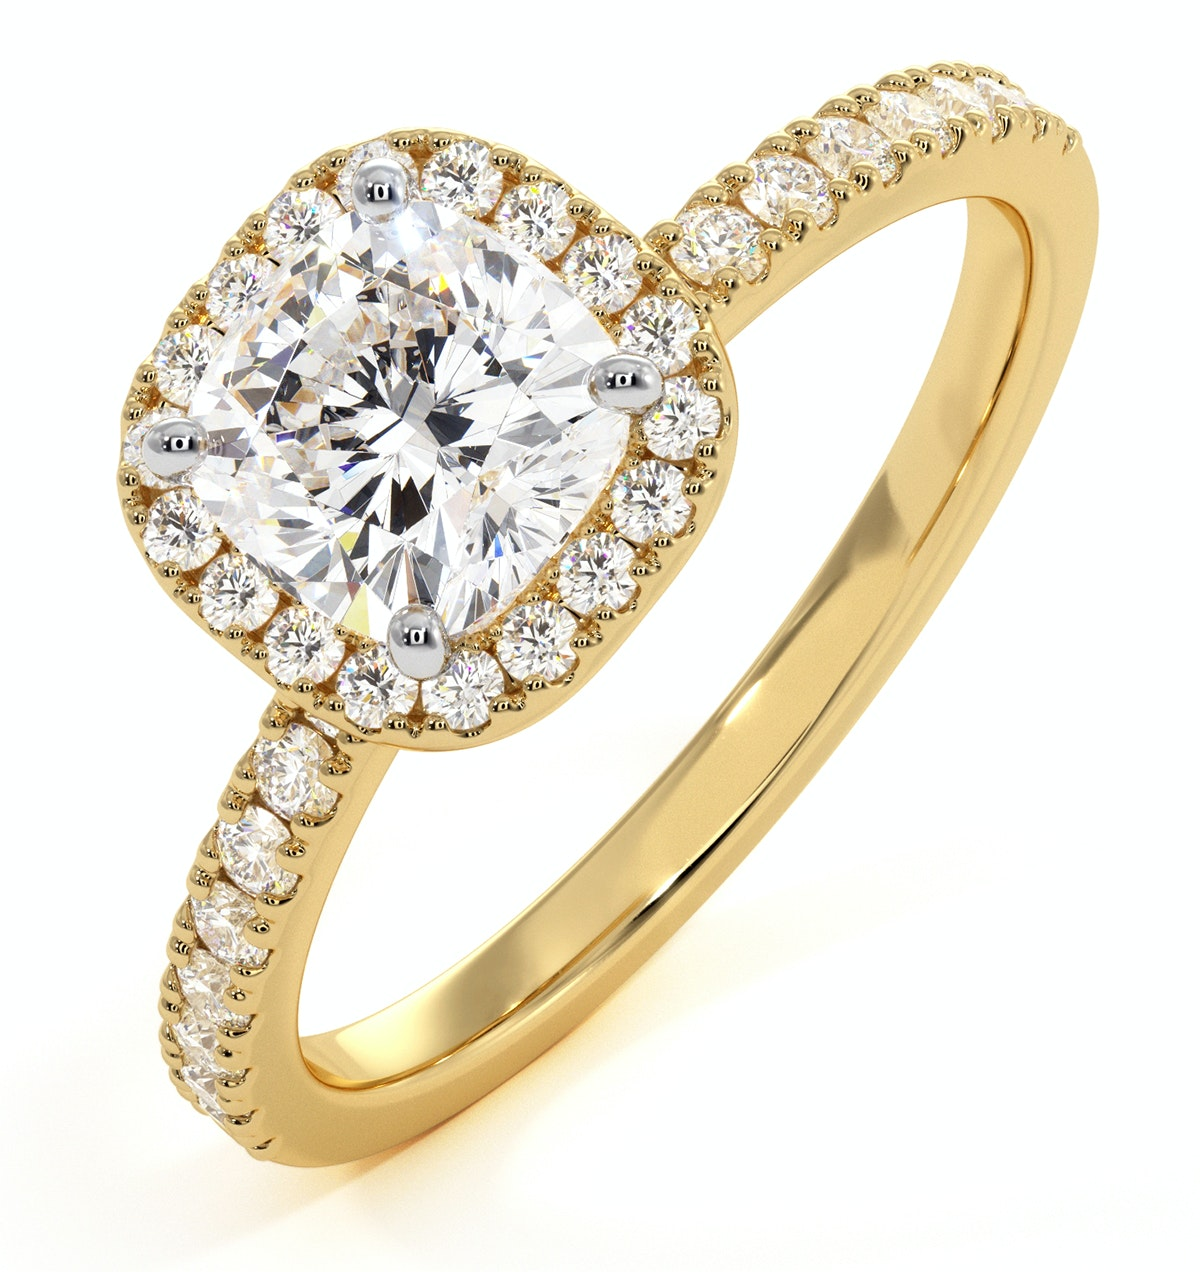 Beatrice GIA Diamond Halo Engagement Ring in 18K Gold 1.48ct G/SI2